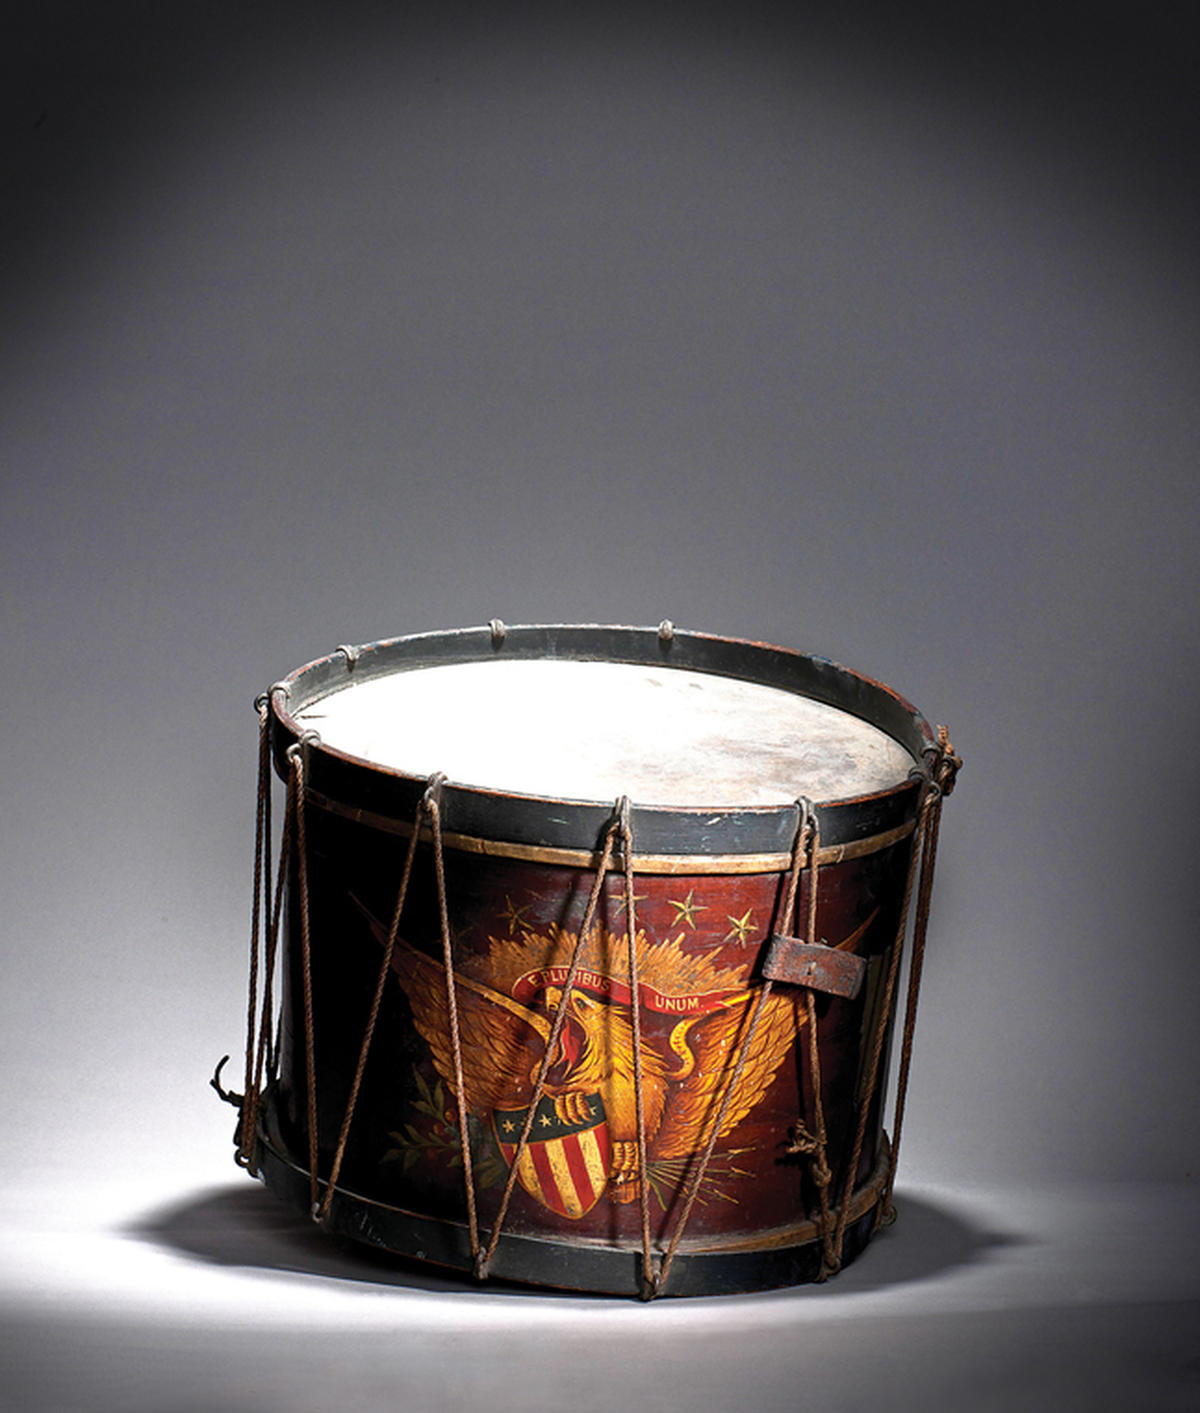 DRUM OWNED BY UNION DRUMMER BOY JAMES W. SANK, 1863